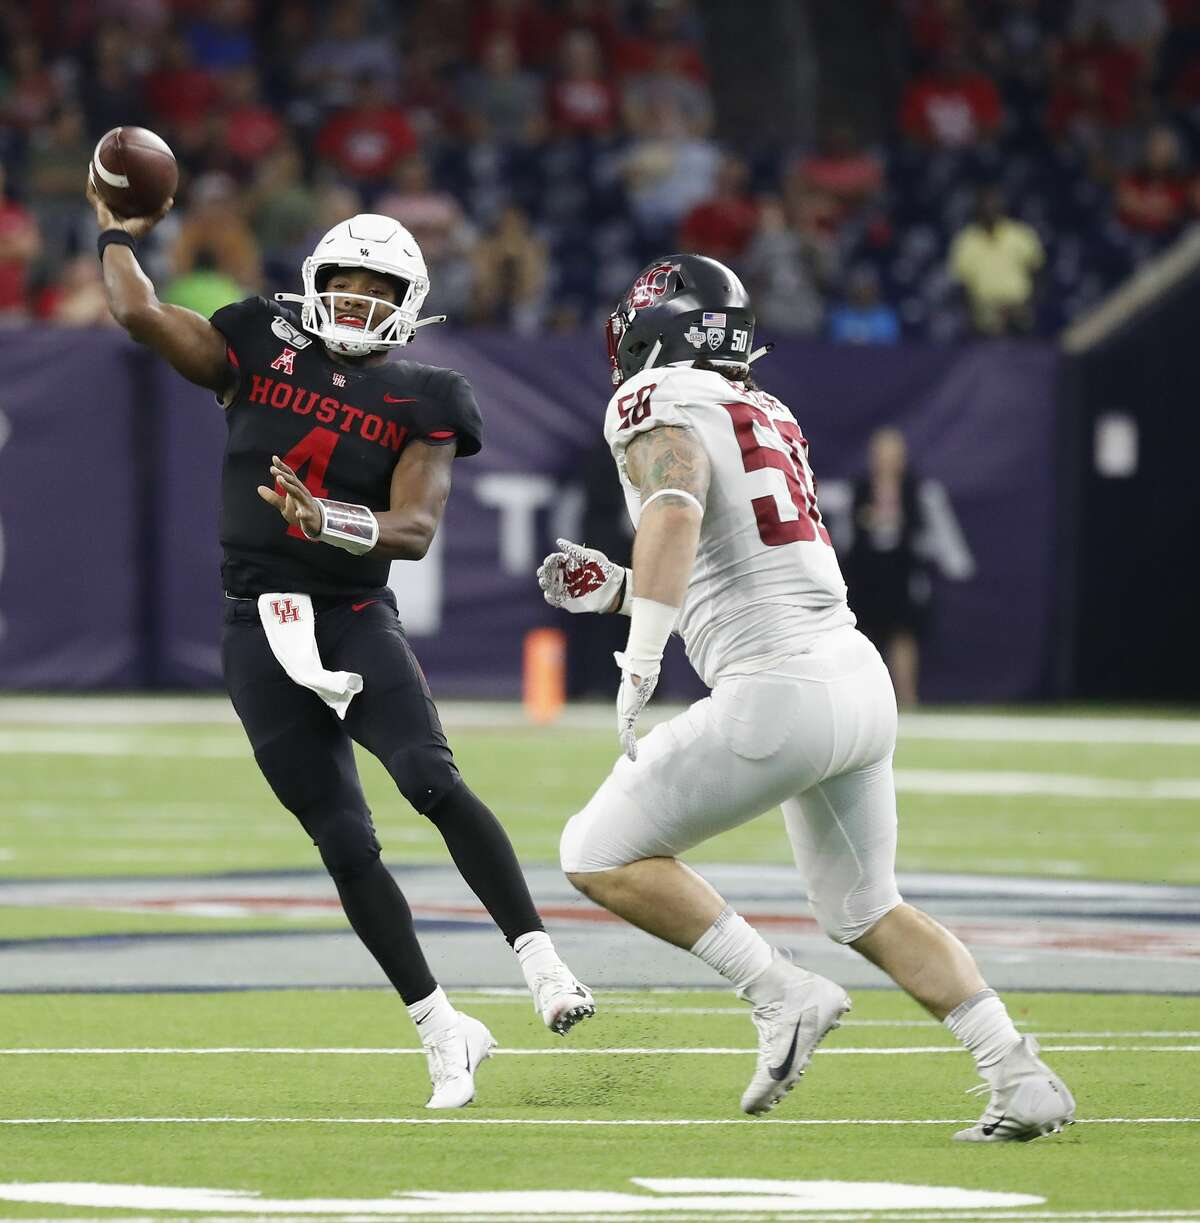 Houston Cougars quarterback D'Eriq King (4) passes the ball against Washington State Cougars defensive lineman Karson Block (50) during the fourth quarter of the AdvoCare Texas Kickoff game at NRG Stadium, Friday, Sept. 13, 2019, in Houston.